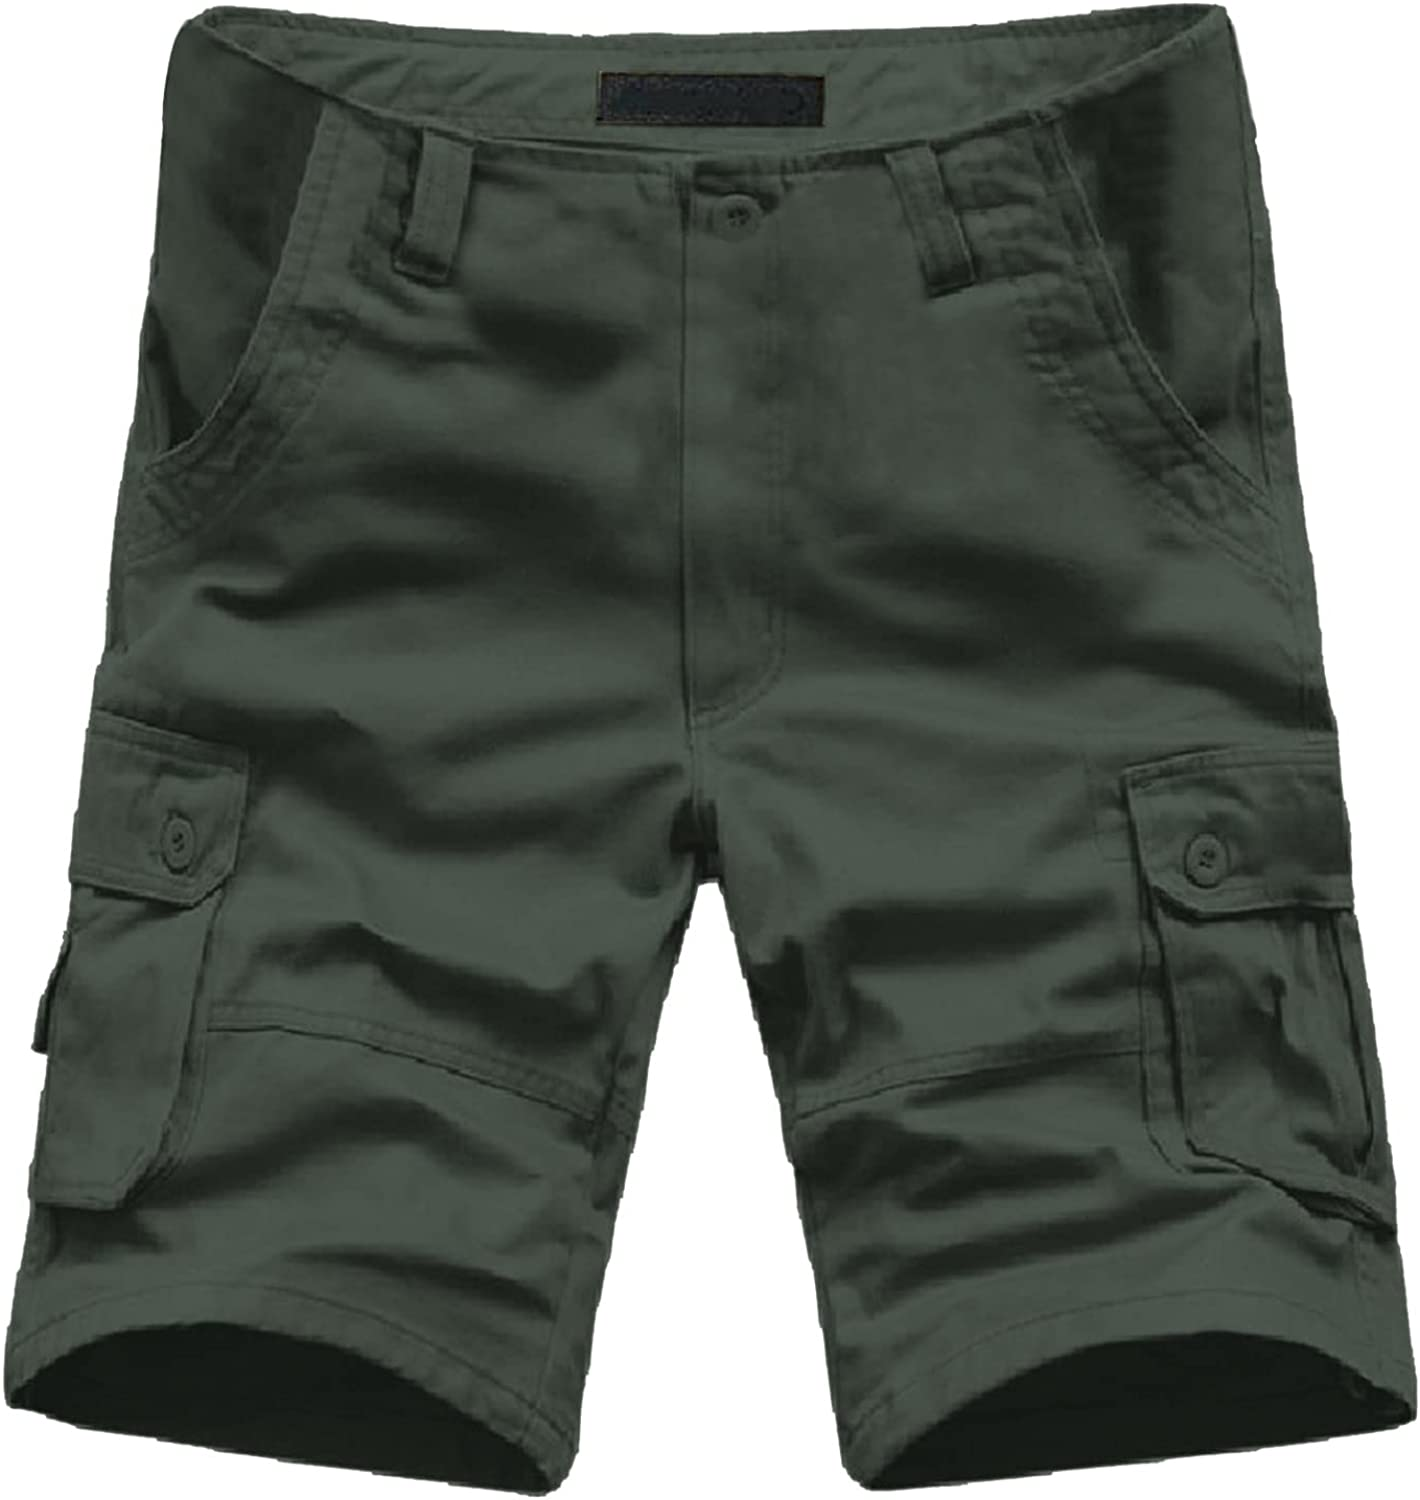 PHSHY Short Pants for Mens 2021 Summer Casual Cargo Sport Outdoors Beach Work Trousers Plus Size with Pocket M-7XL